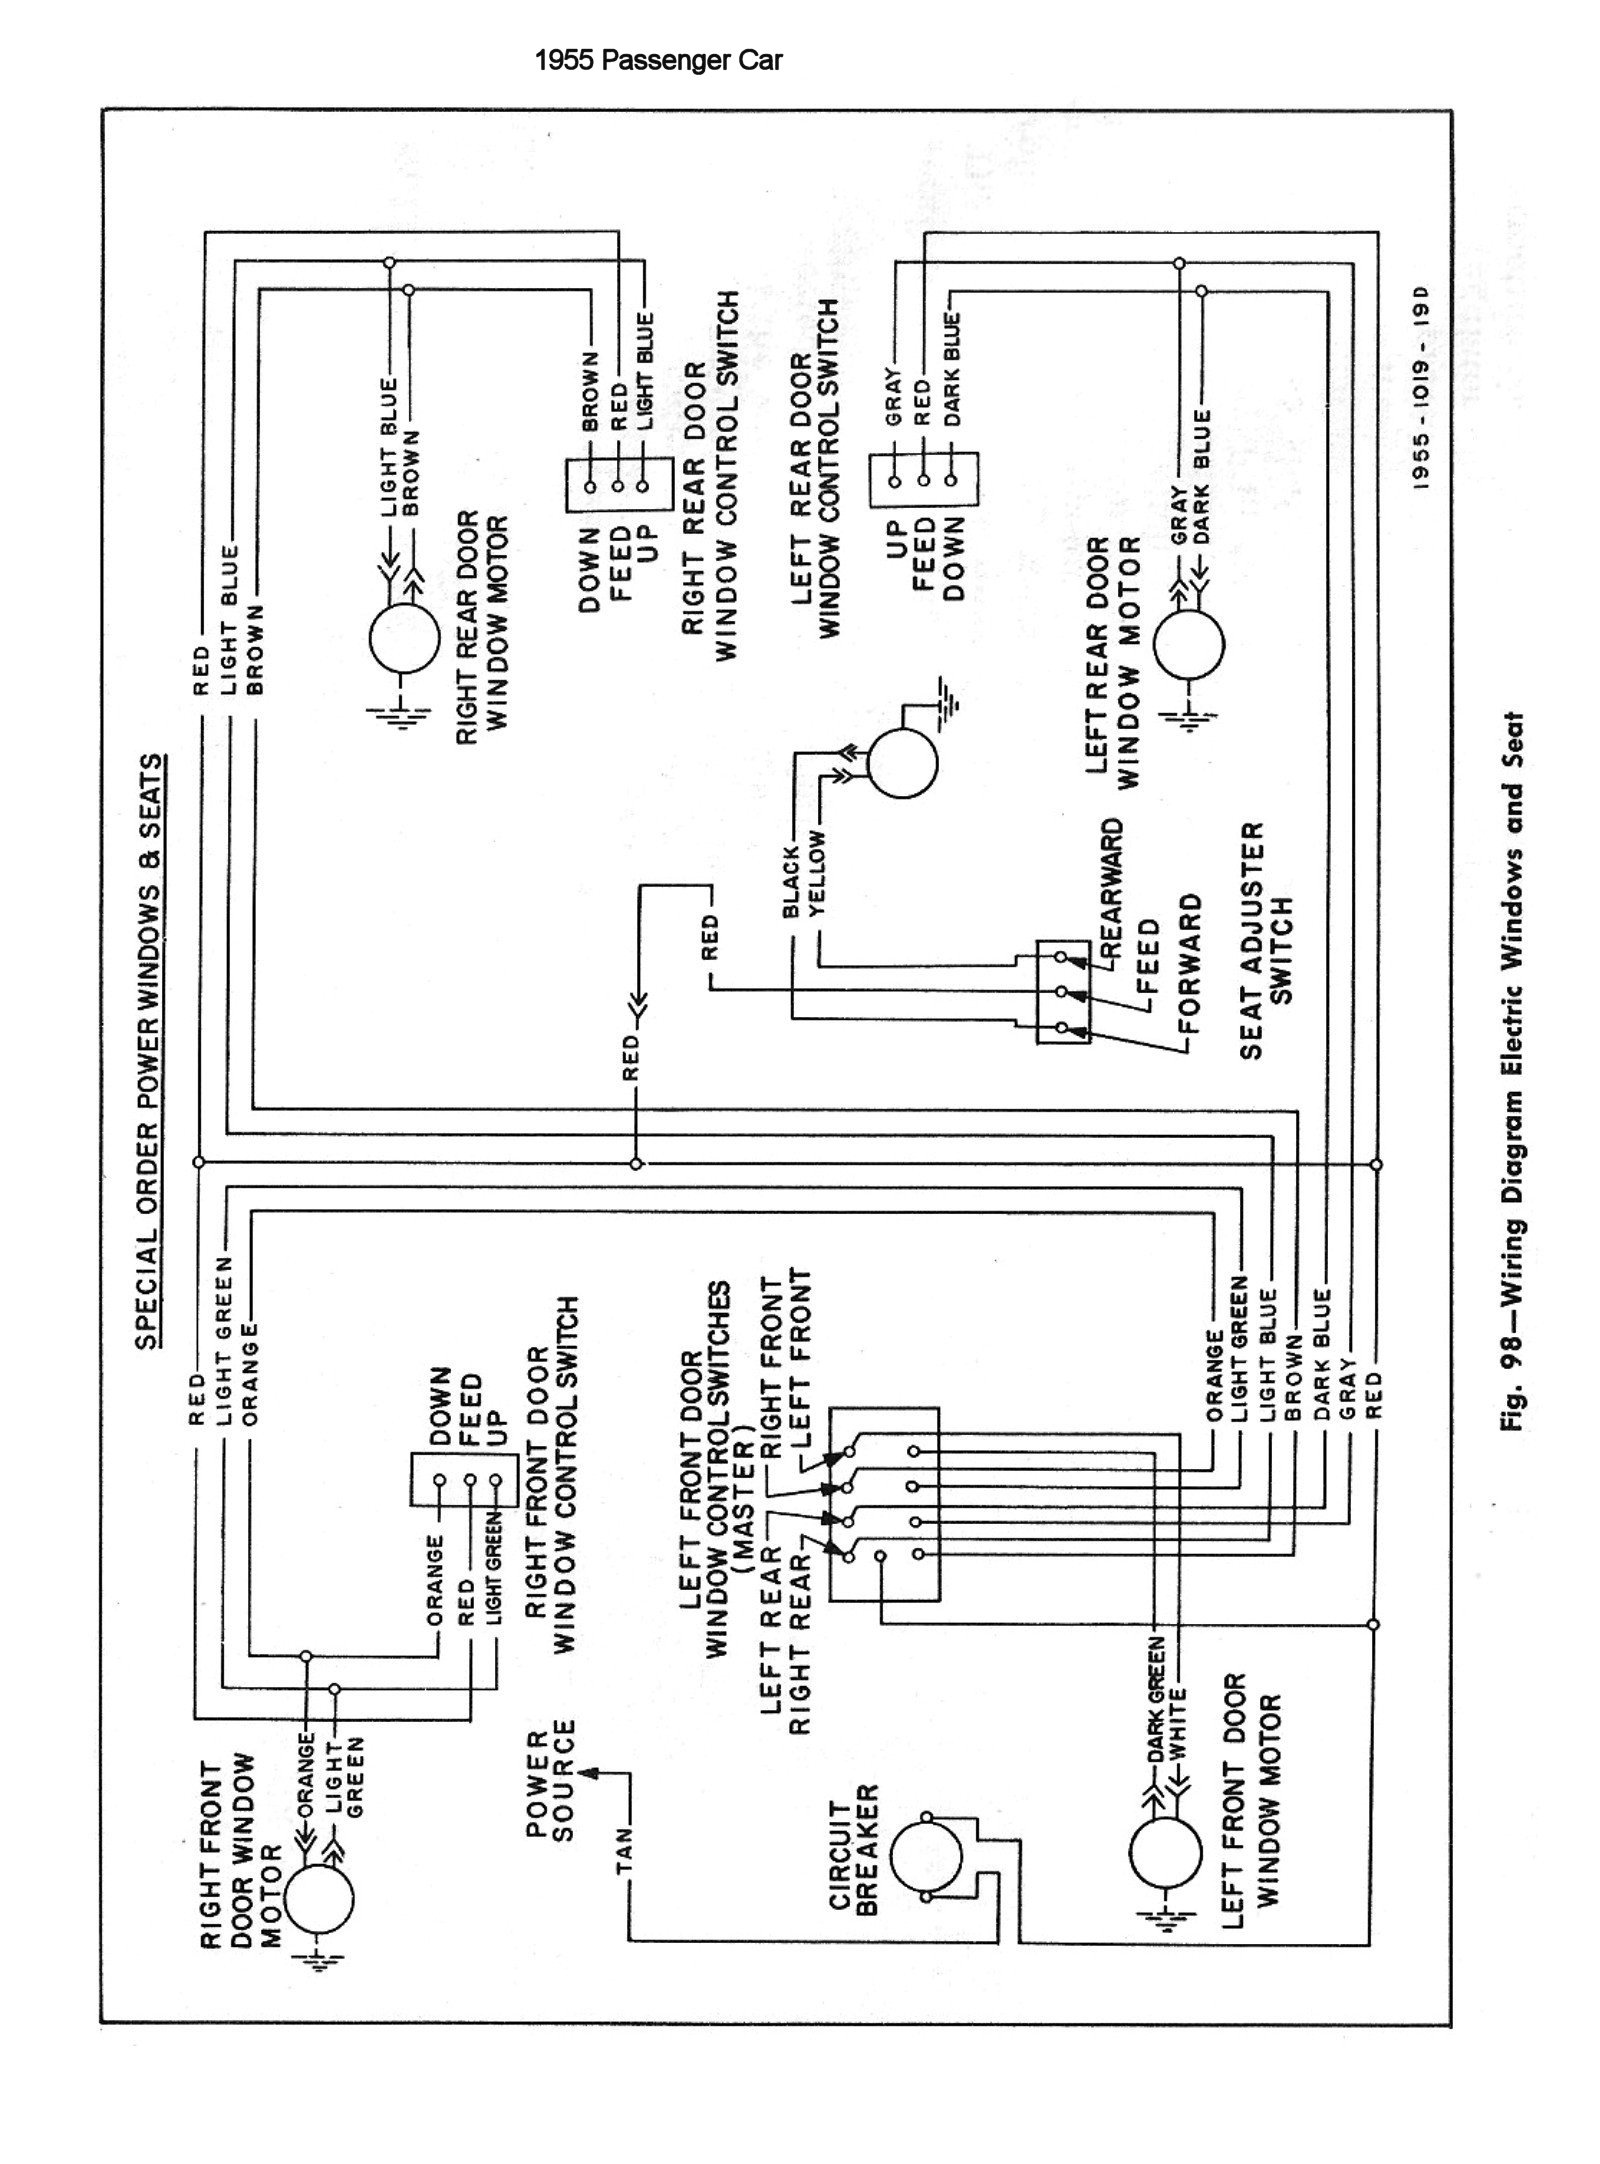 55csm0146 chevy wiring diagrams 1986 chevy c10 wiring diagram at creativeand.co